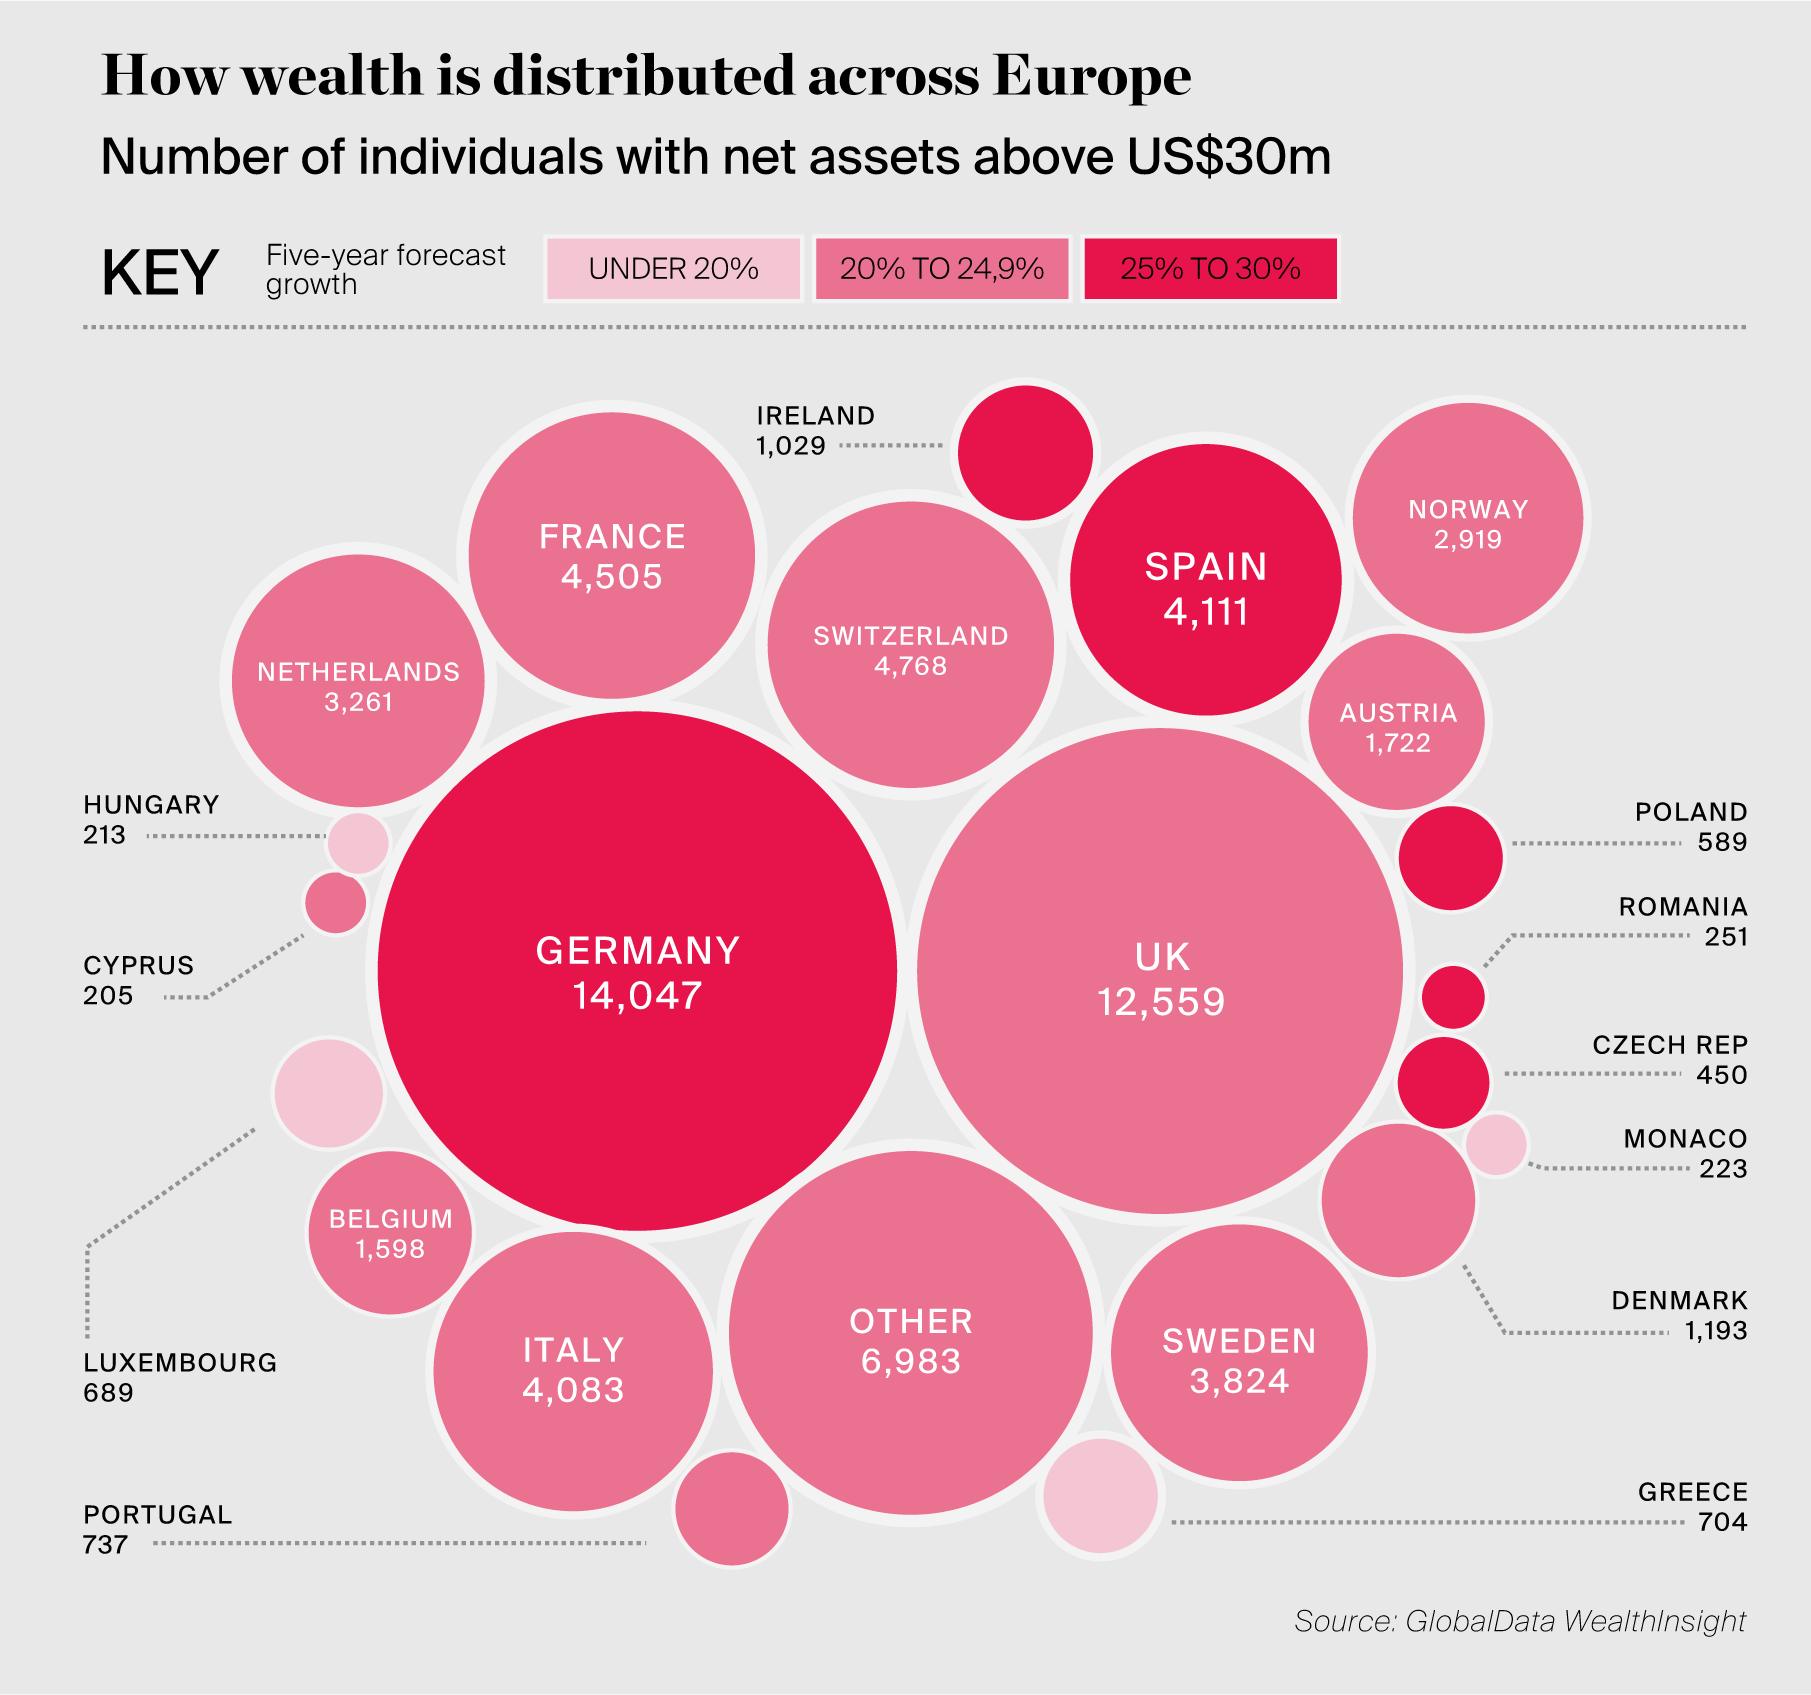 How wealth is distributed across Europe